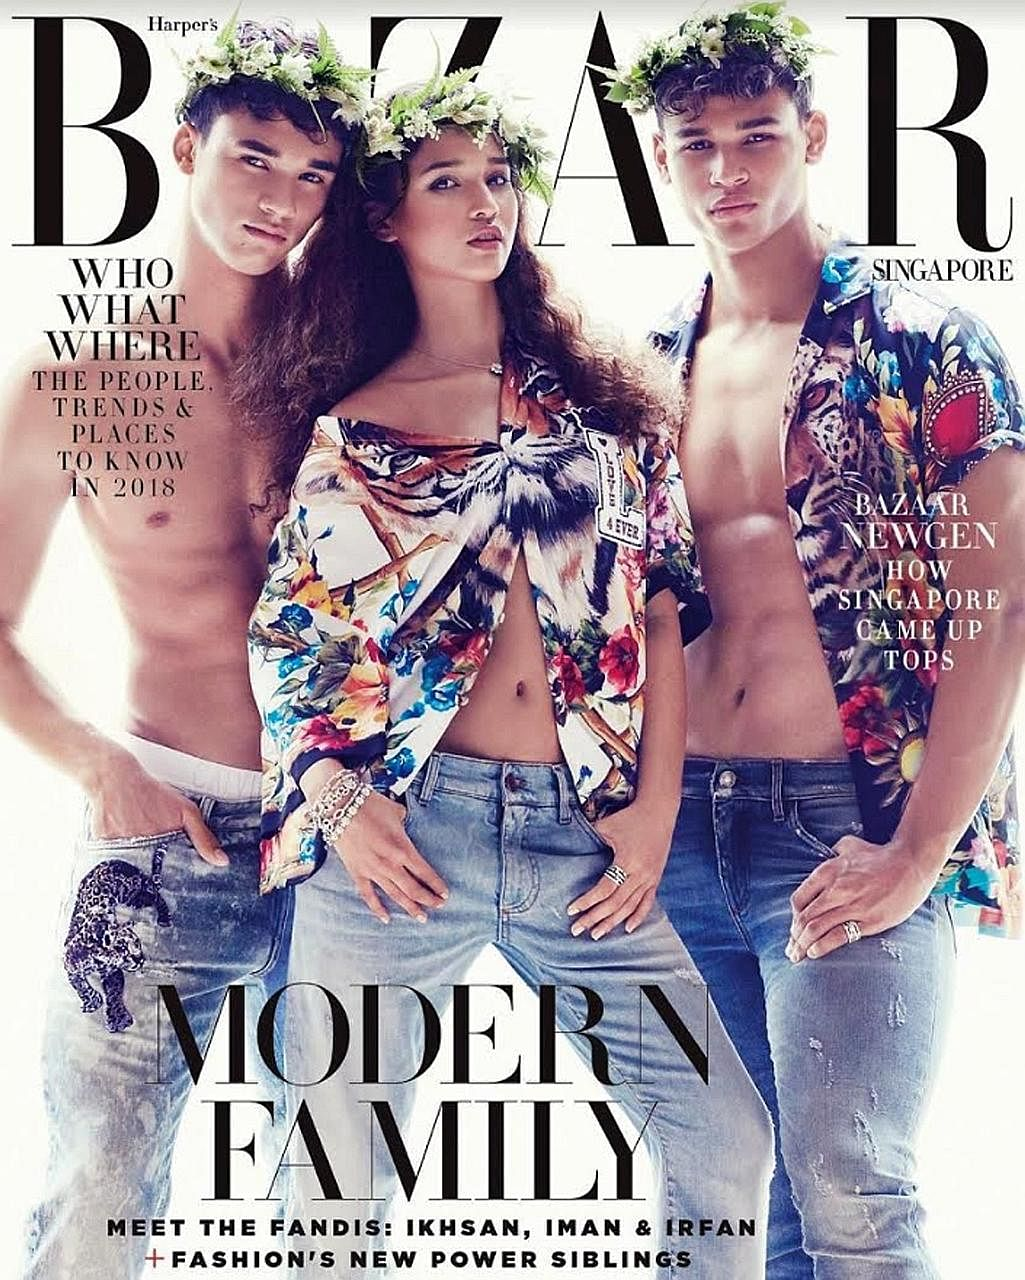 Ikhsan, Iman and Irfan Fandi on the cover of the January 2018 edition of Harper's Bazaar. Fandi's sons are not just making their mark on the pitch but also in fashion.